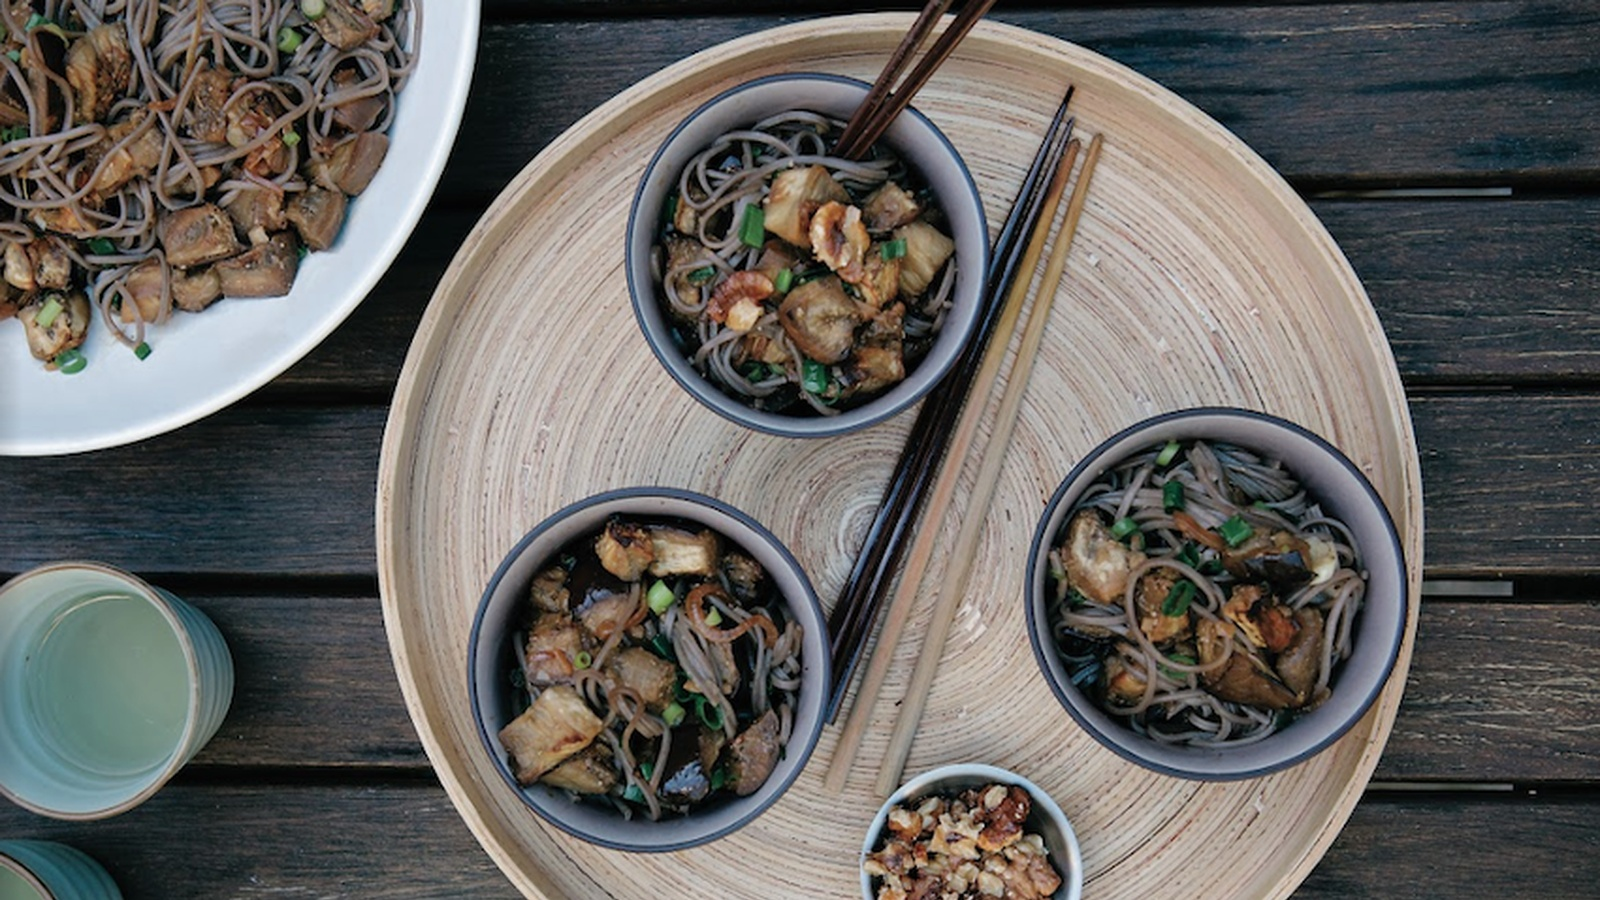 Miso Eggplant with Soba Noodles and Walnuts